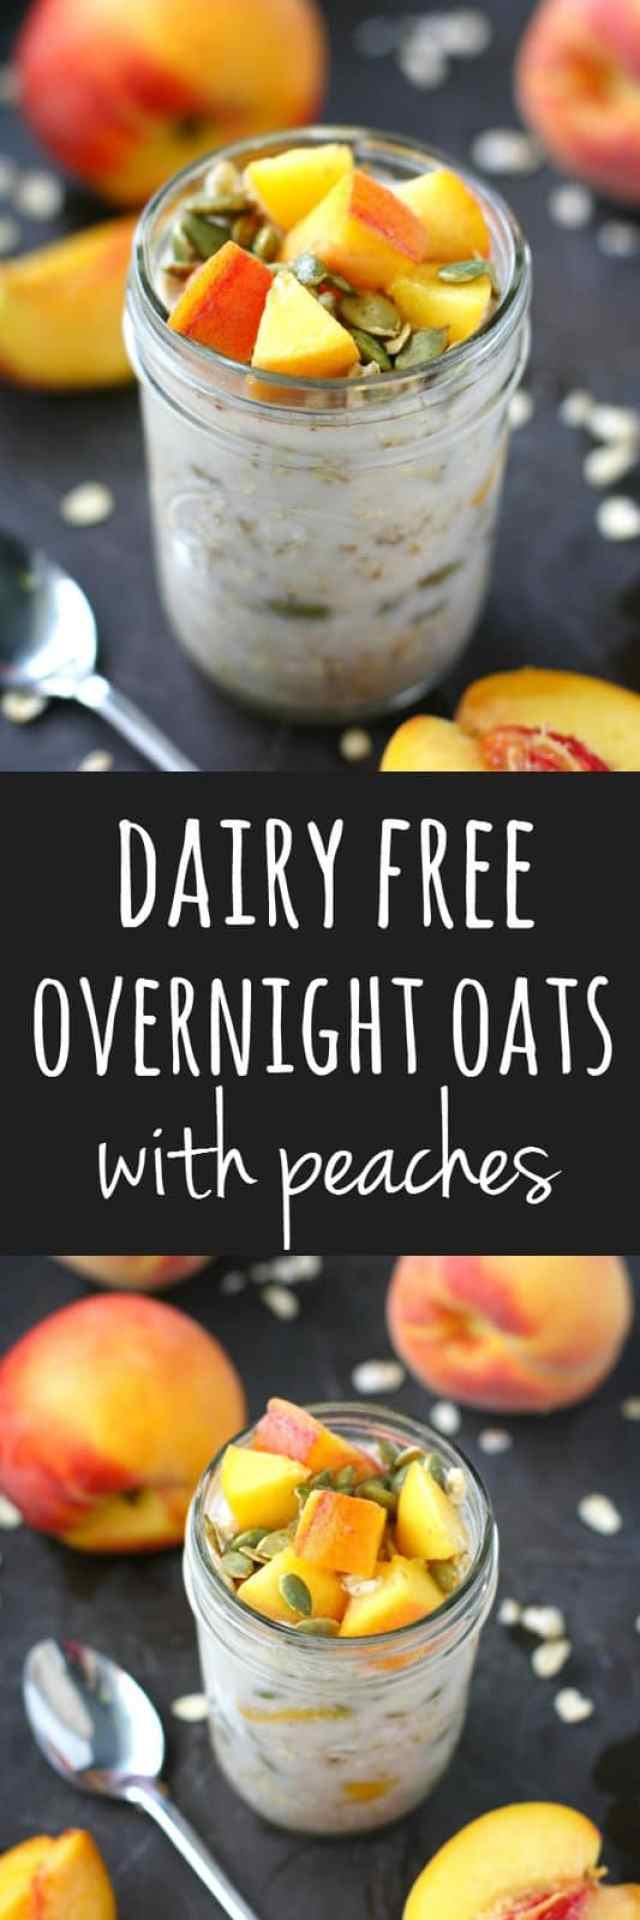 Creamy dairy free overnight oats are topped with fresh peaches for a delicious and healthy breakfast.